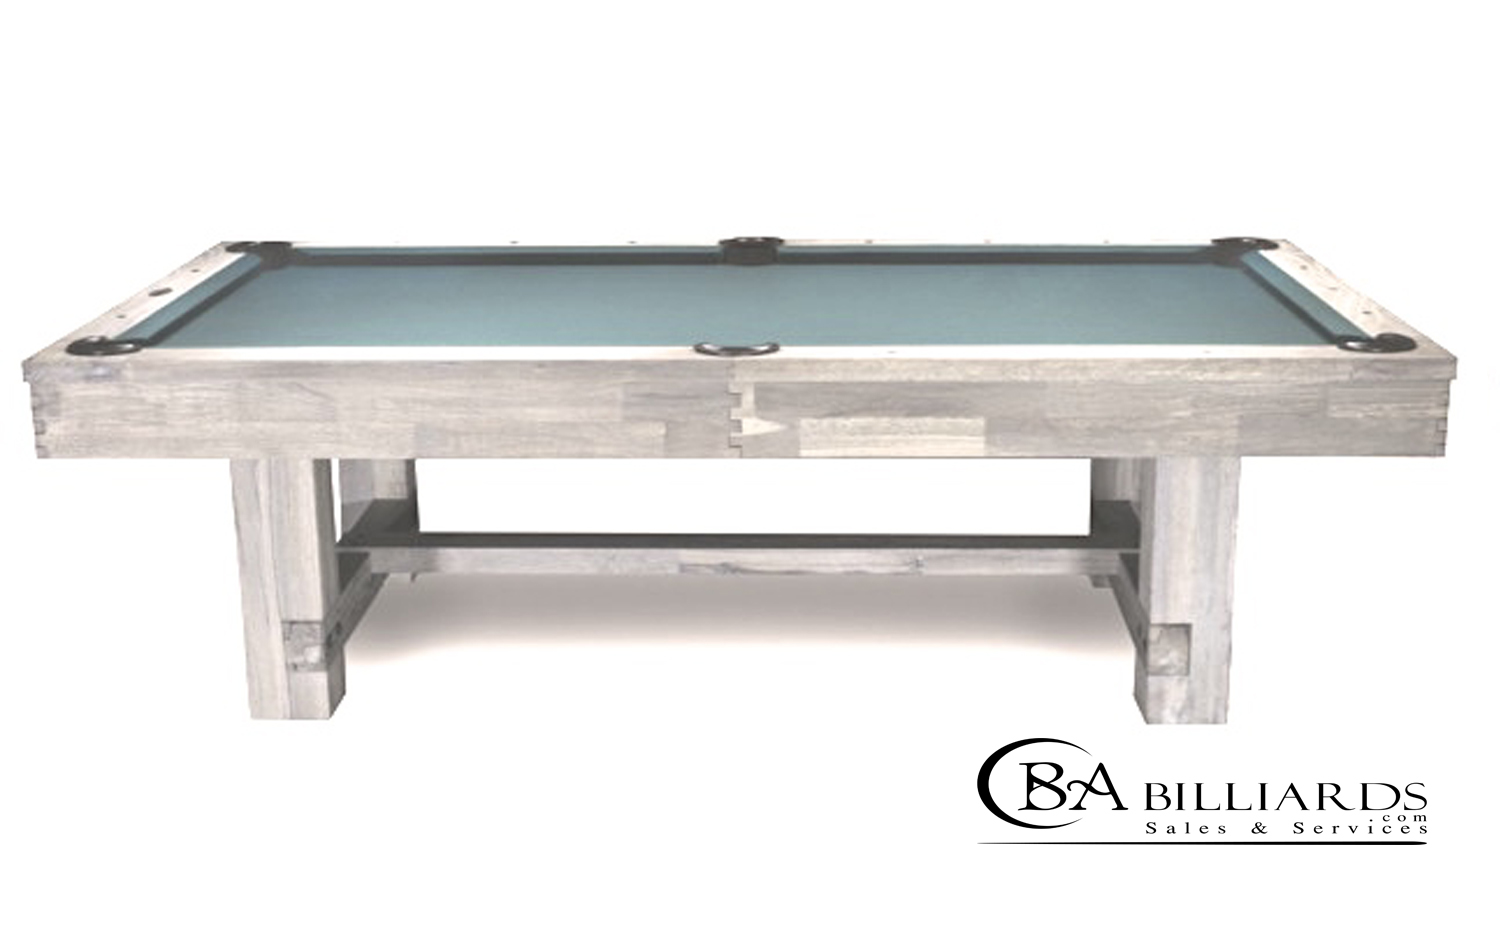 BRENTWOOD POOL TABLE POOL TABLES FOR SALE Rustic Pool Tables - White billiard table